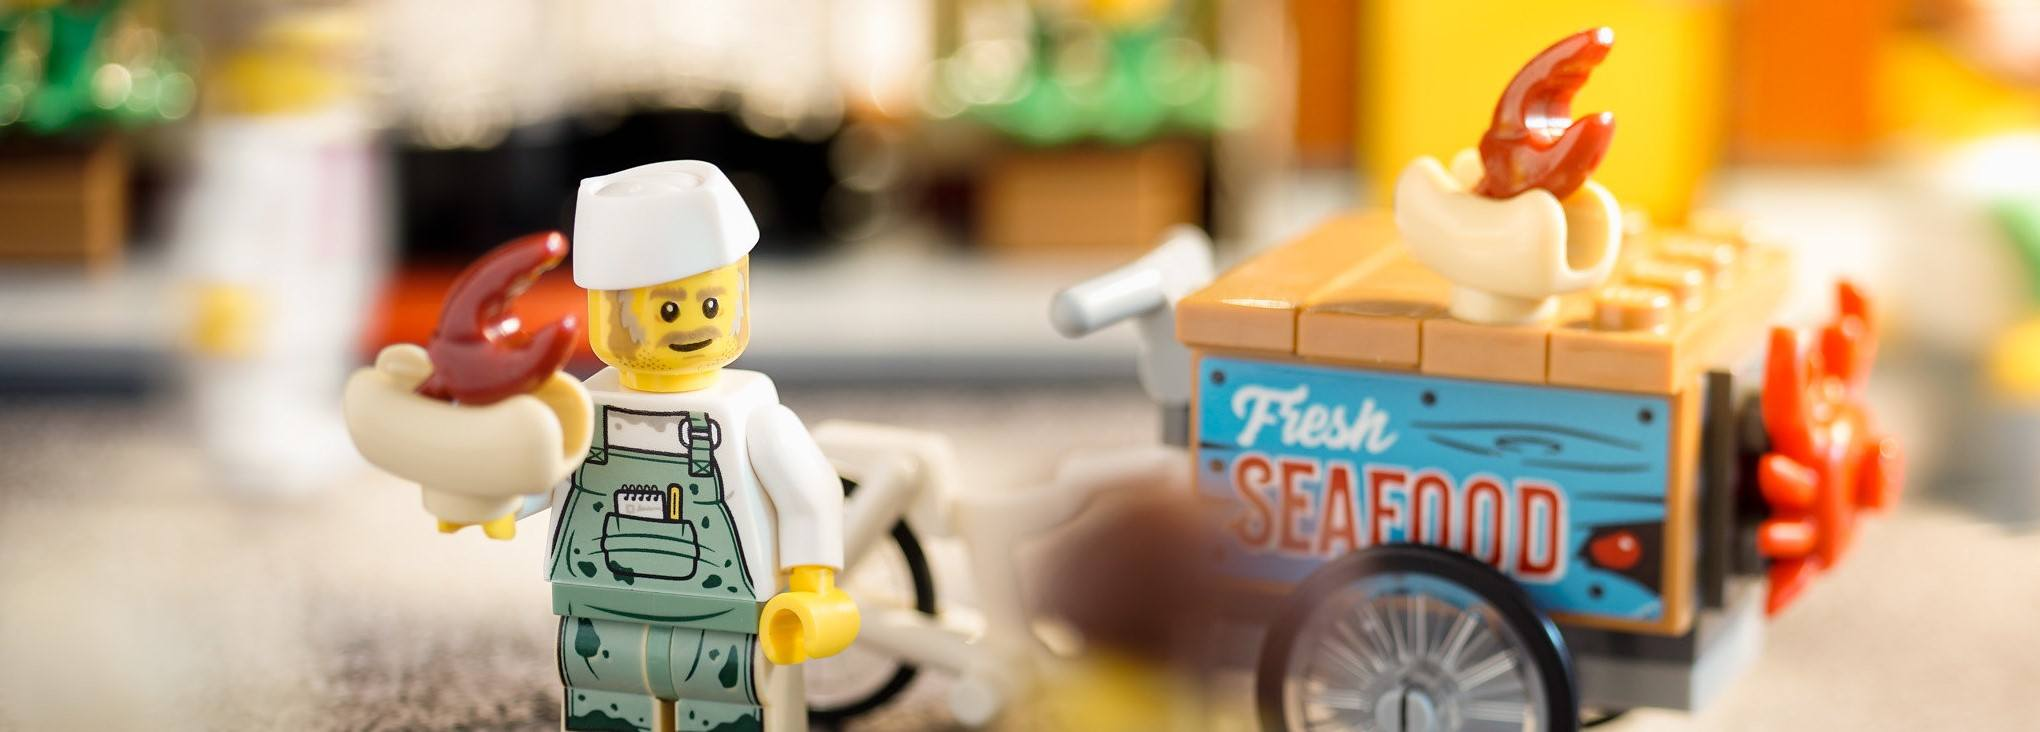 A LEGO holding some seafood, which looks like a big portion size.